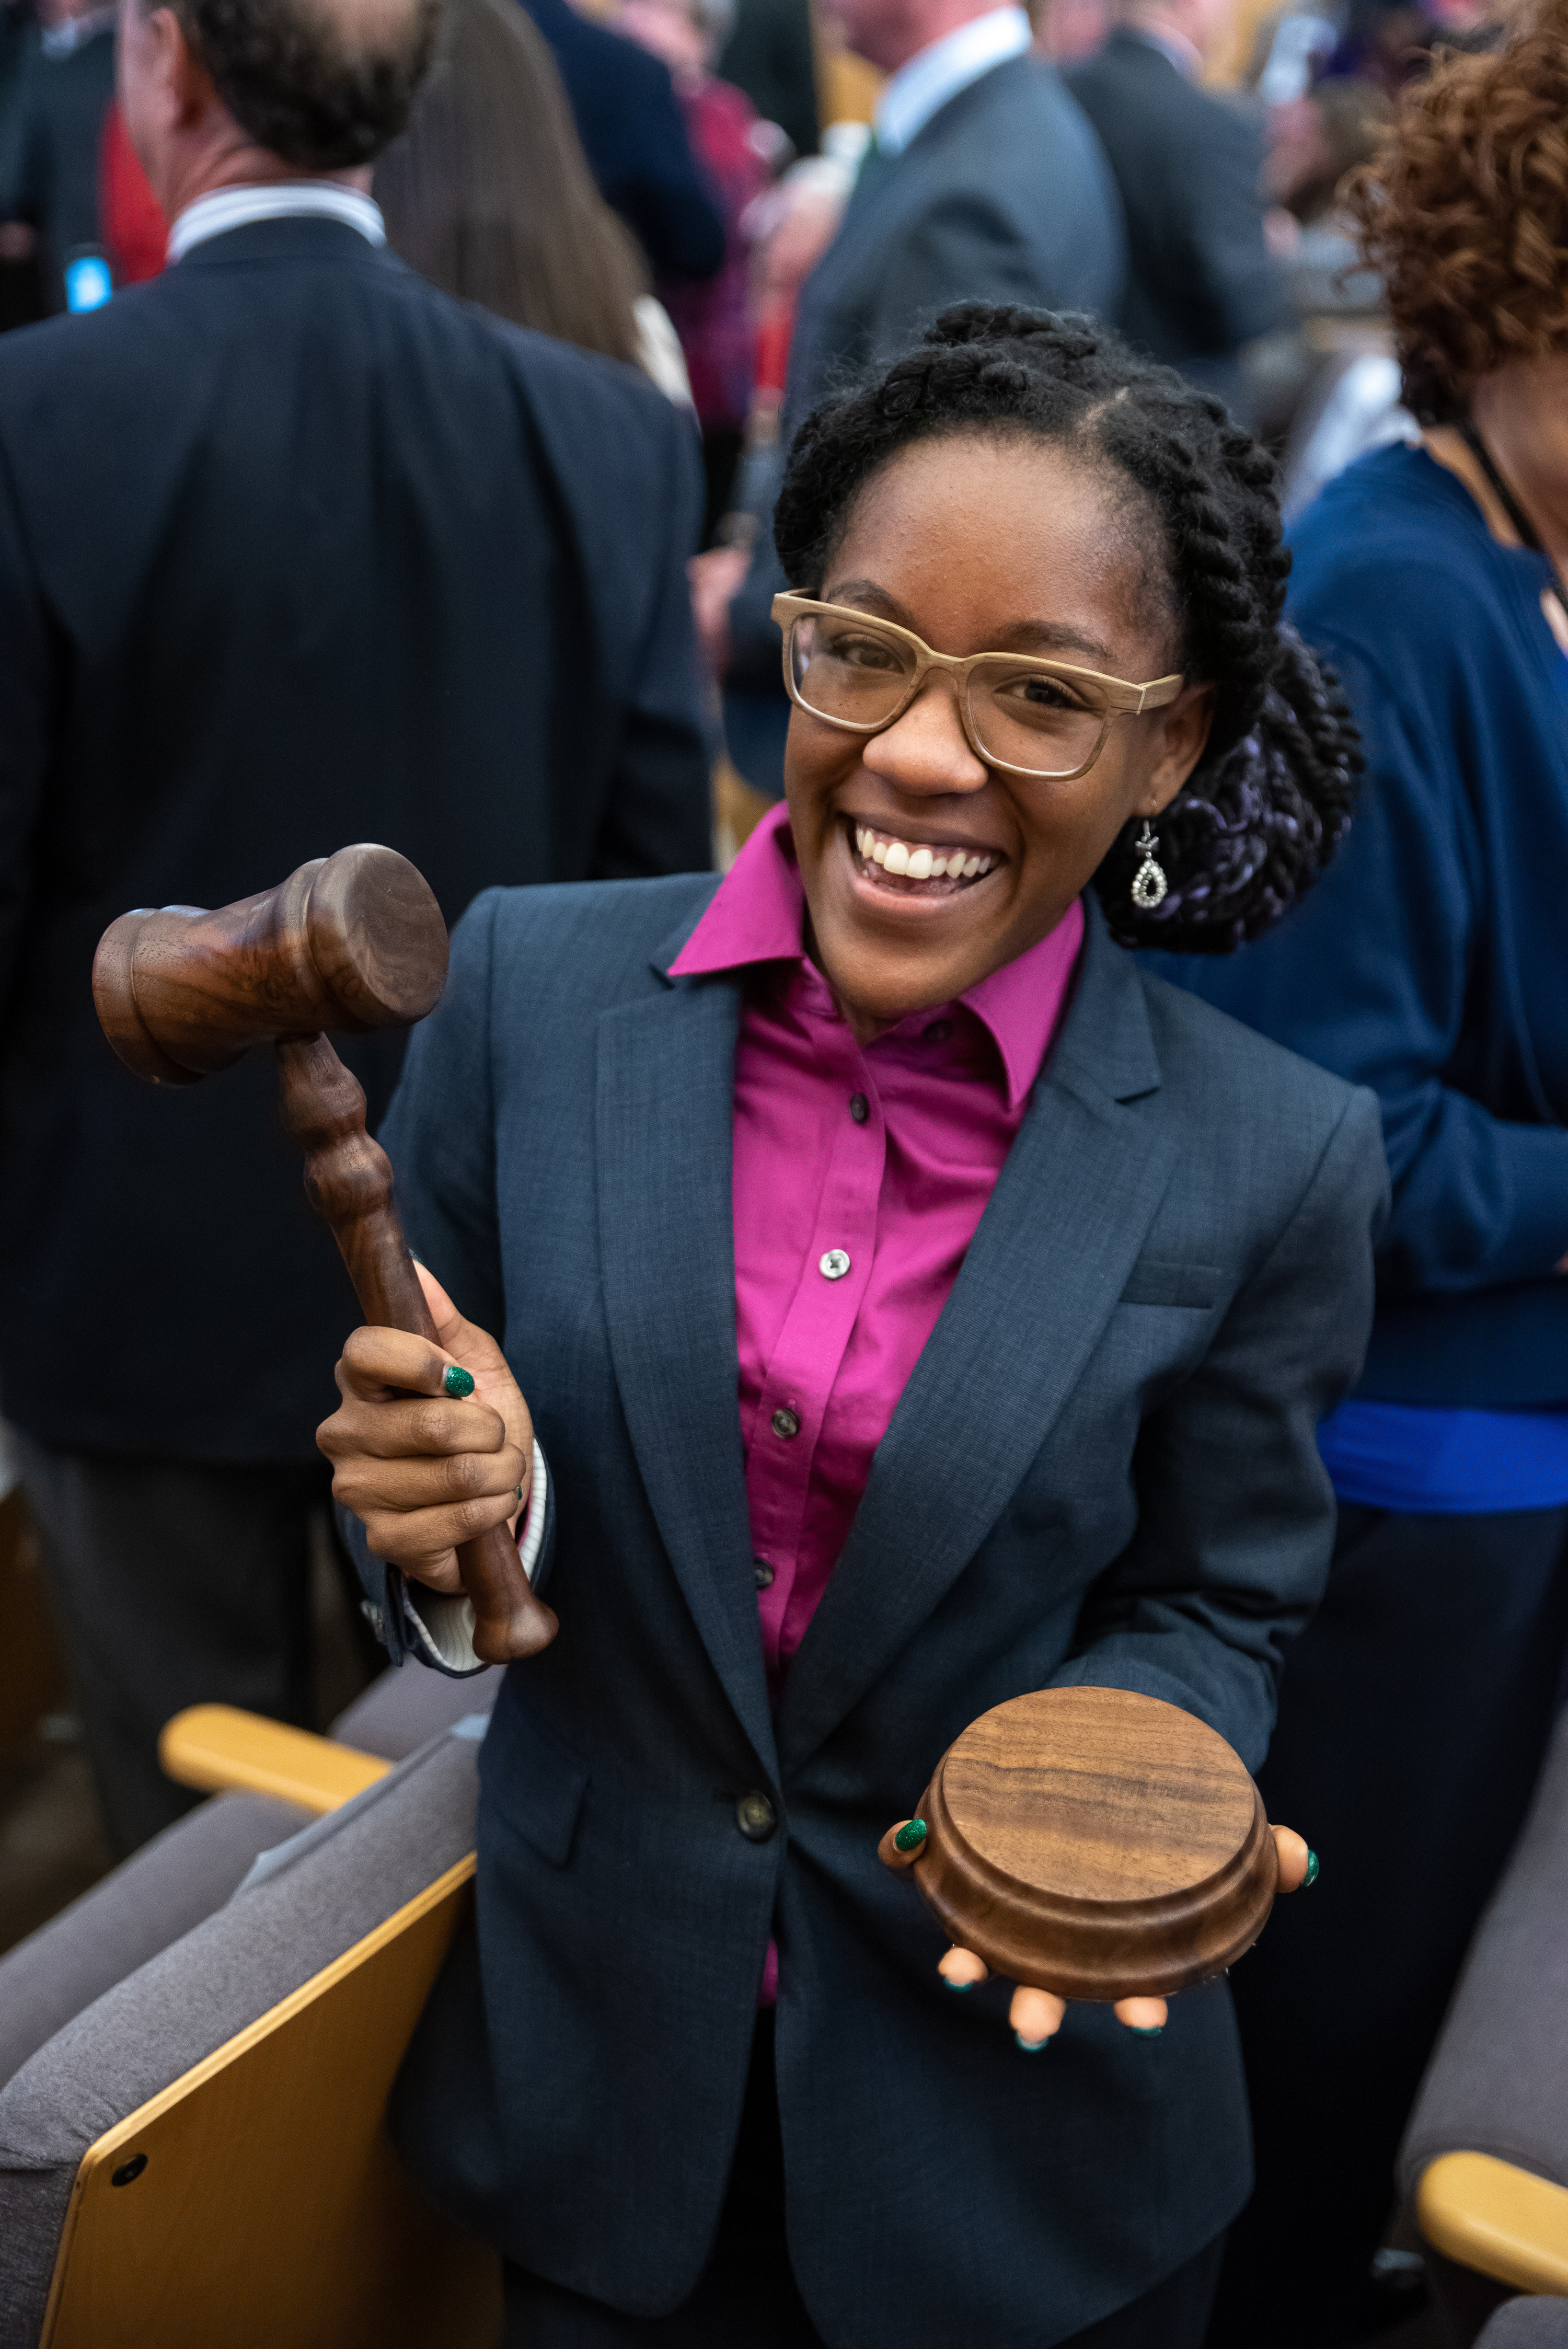 Elaissia Sears, an alumna of The College of Liberal Arts and Sciences' School of Politics and Global Studies, was sworn is as Justice of the Peace for the West Mesa Justice Court this January.